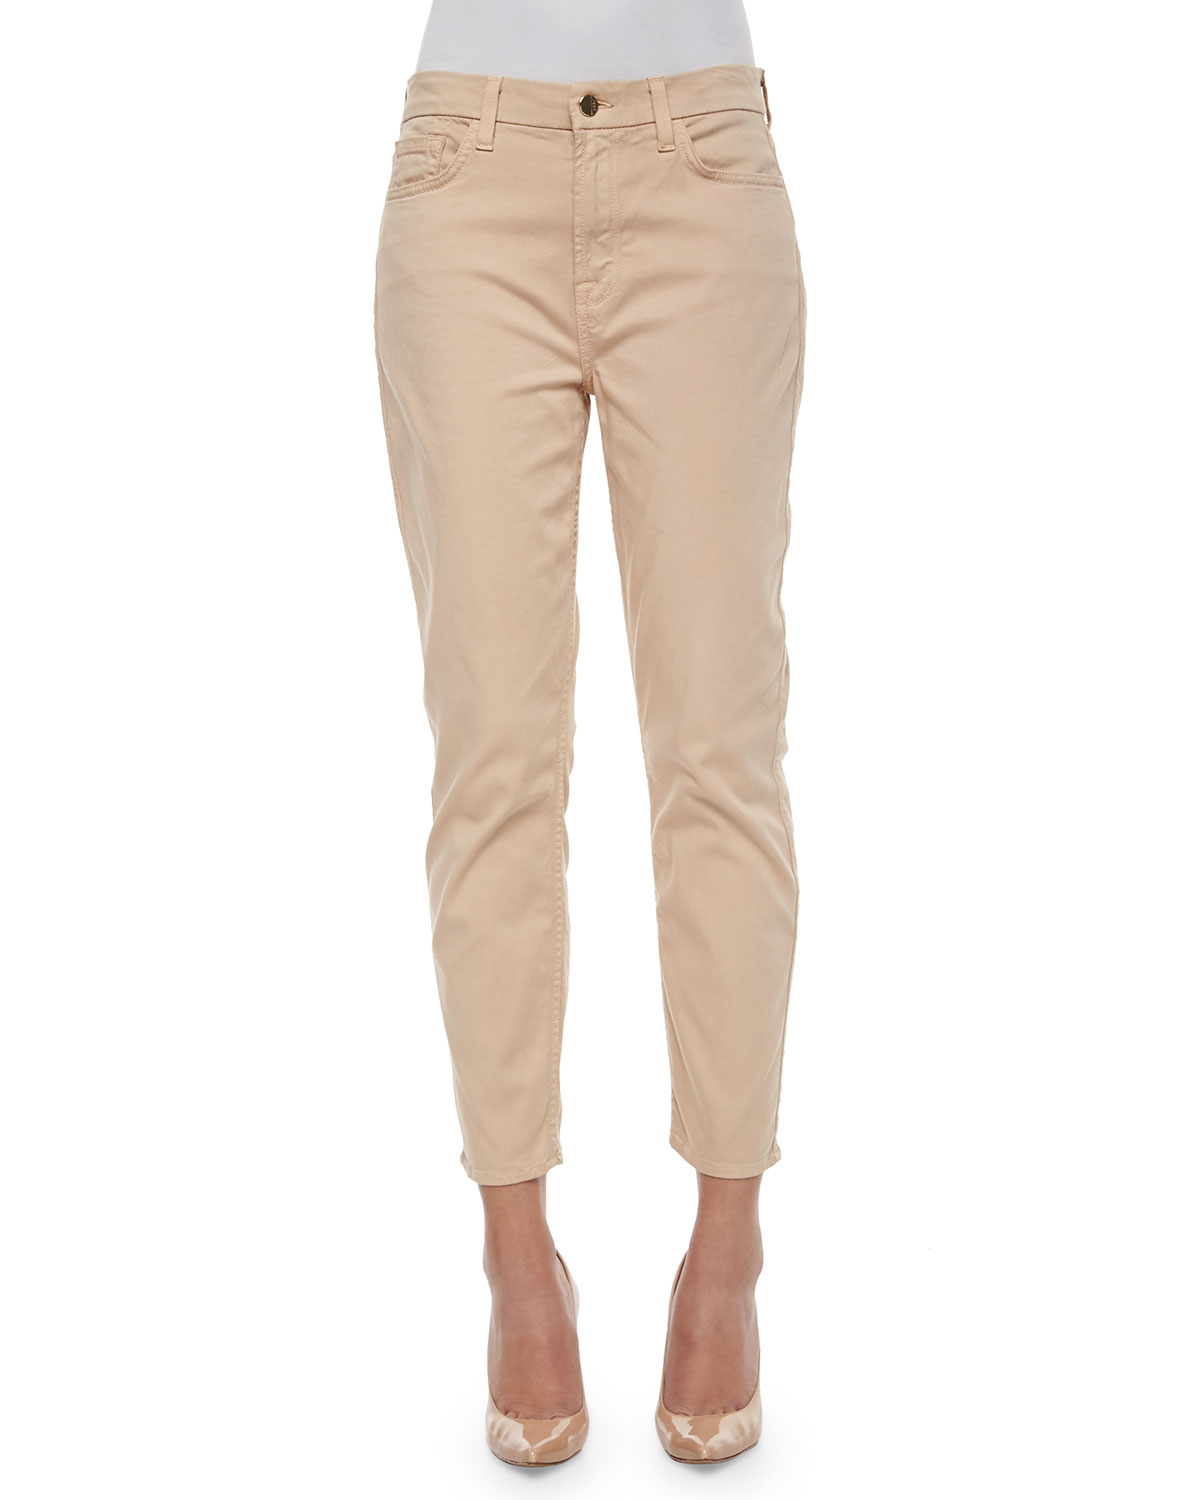 Innovative LAS VEGAS, Aug 18 Reuters  Women Who Hate Skinny Jeans Can Rejoice This Spring  The Move Comes As Jeans As A Category Will Lessen In Importance This Spring, Experts Said Khakis And Corduroy Pants Are Expected To Steal The Focus,